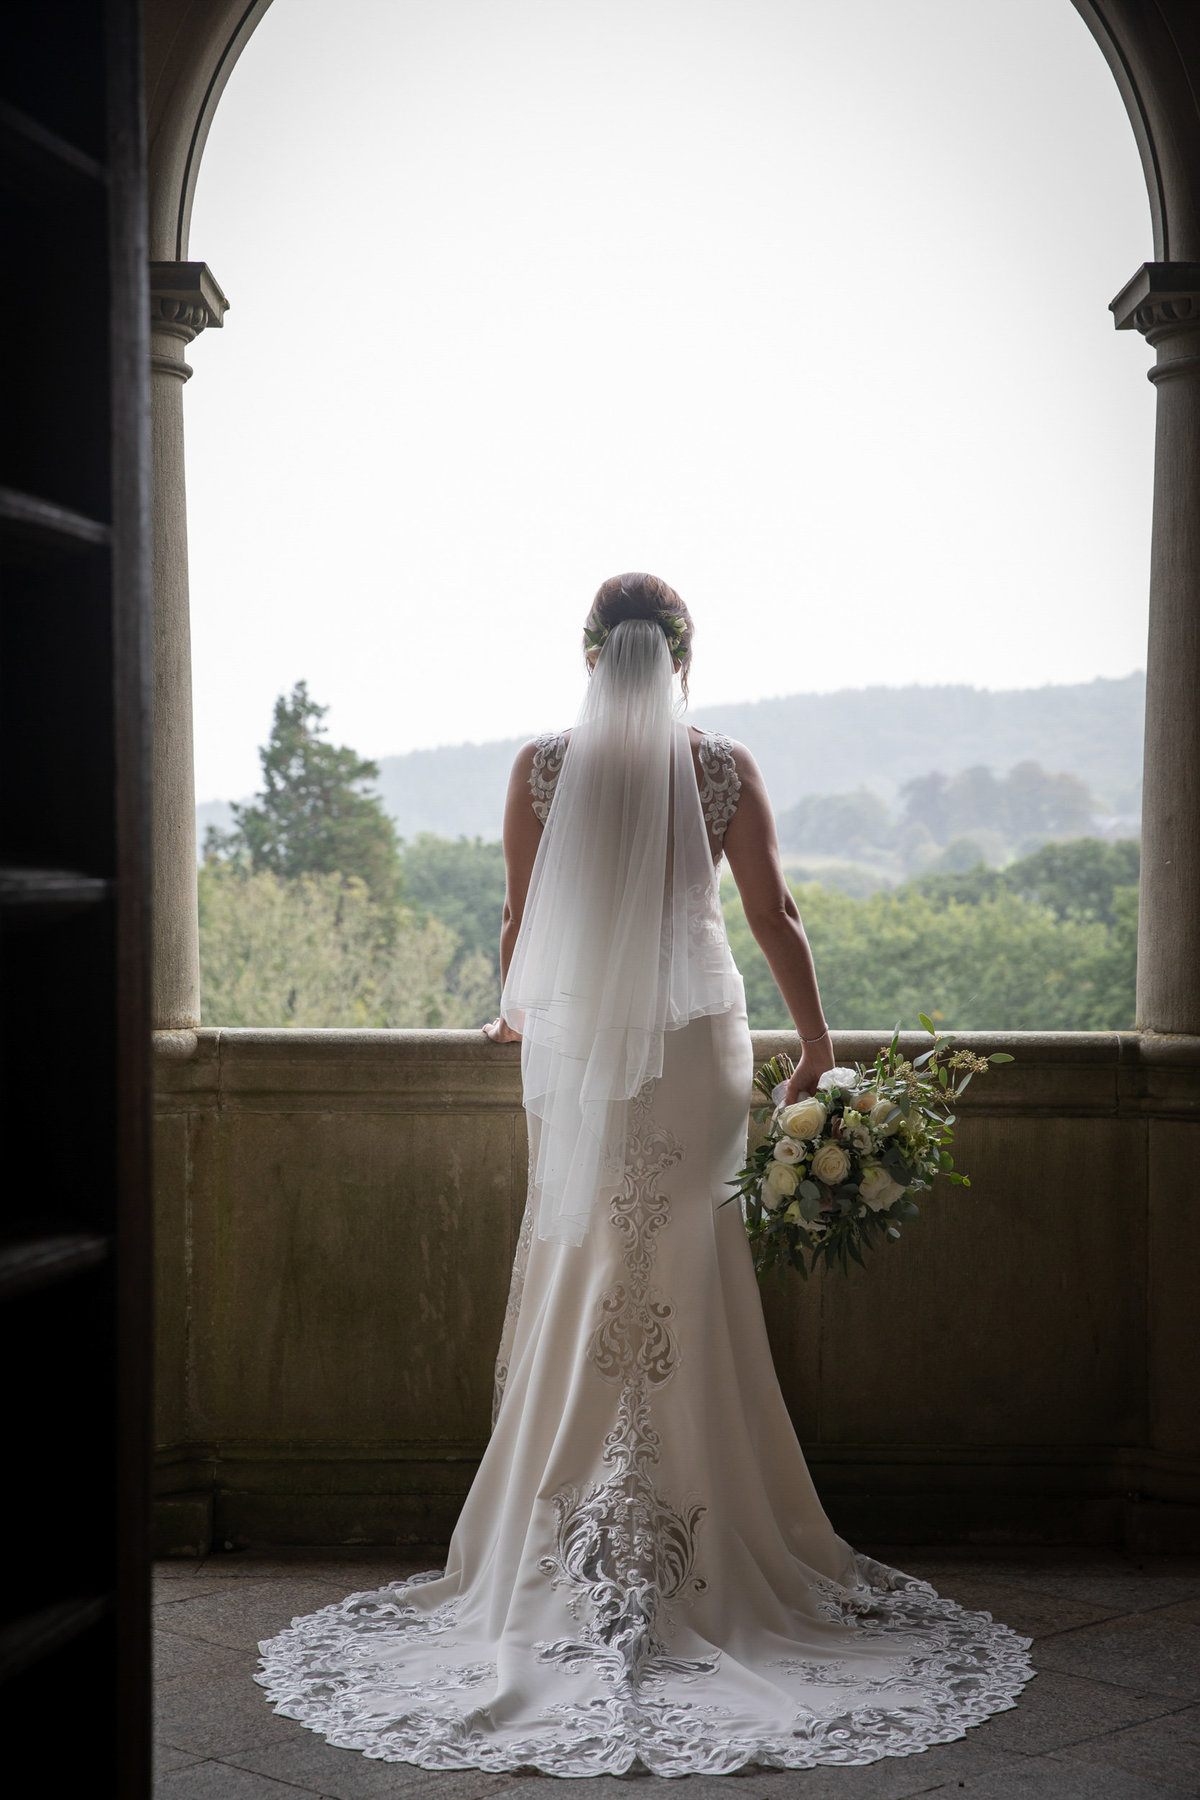 Bridal portrait at Bovey Castle Wedding in Devon